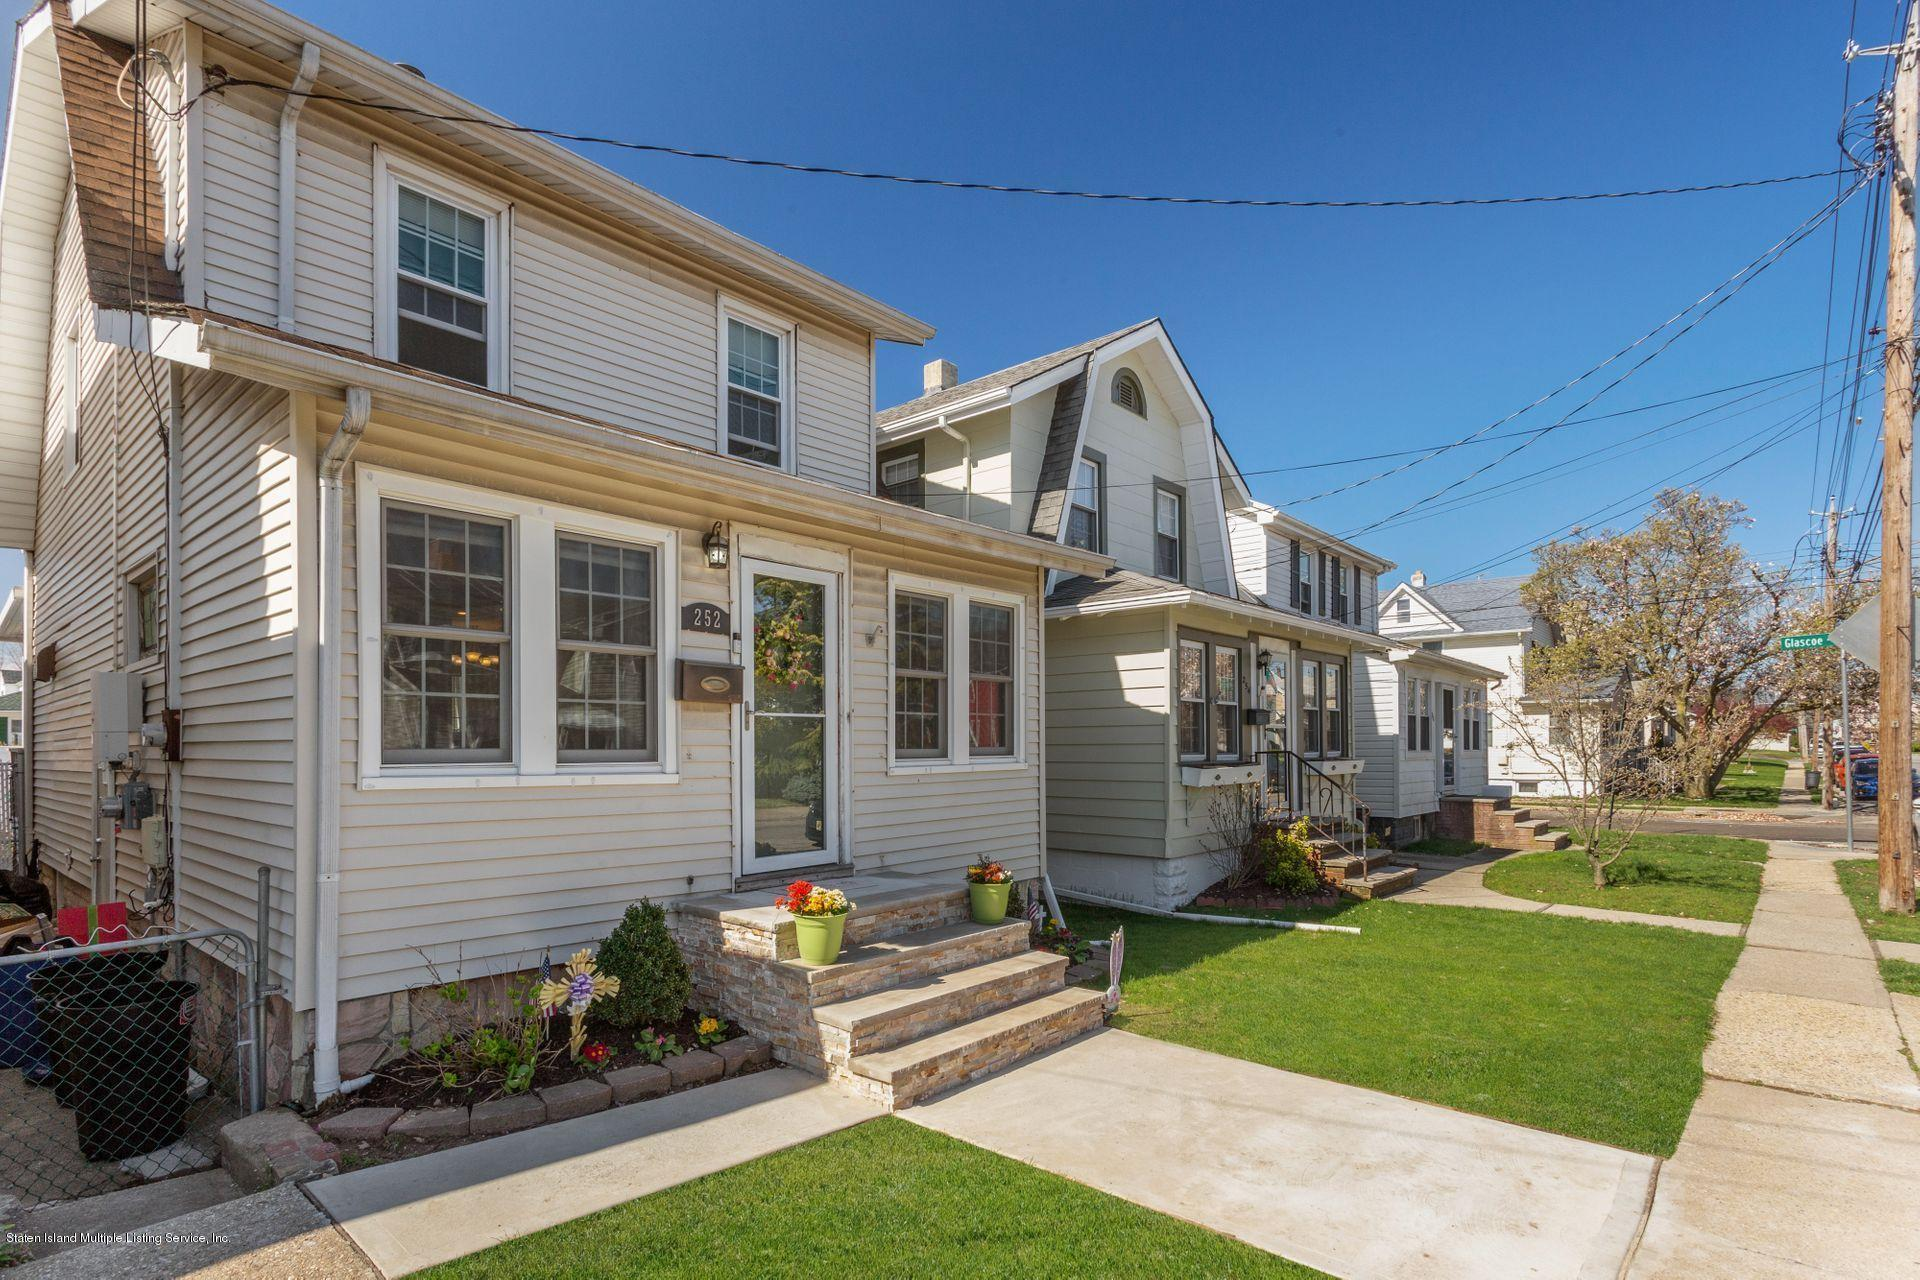 Single Family - Detached 252 Waters Avenue  Staten Island, NY 10314, MLS-1128050-3